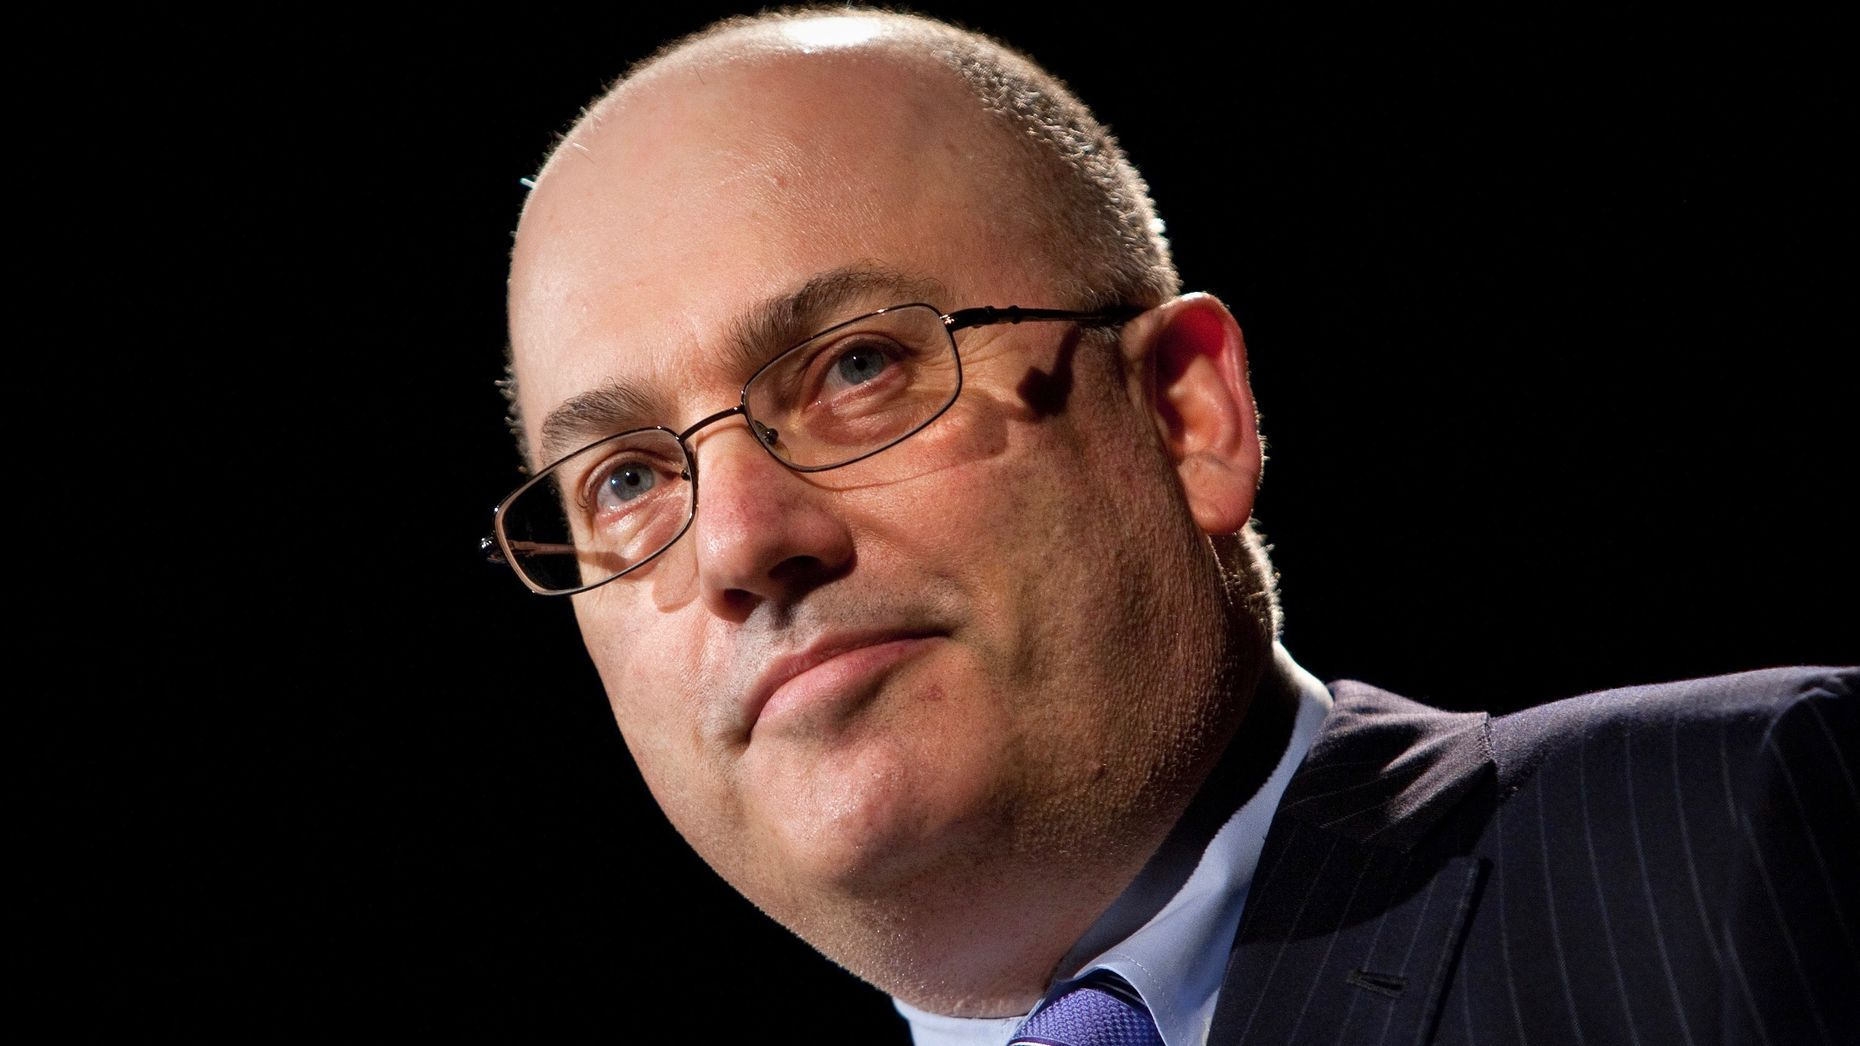 Hedge fund billionaire Steve Cohen. Photo by Bloomberg.